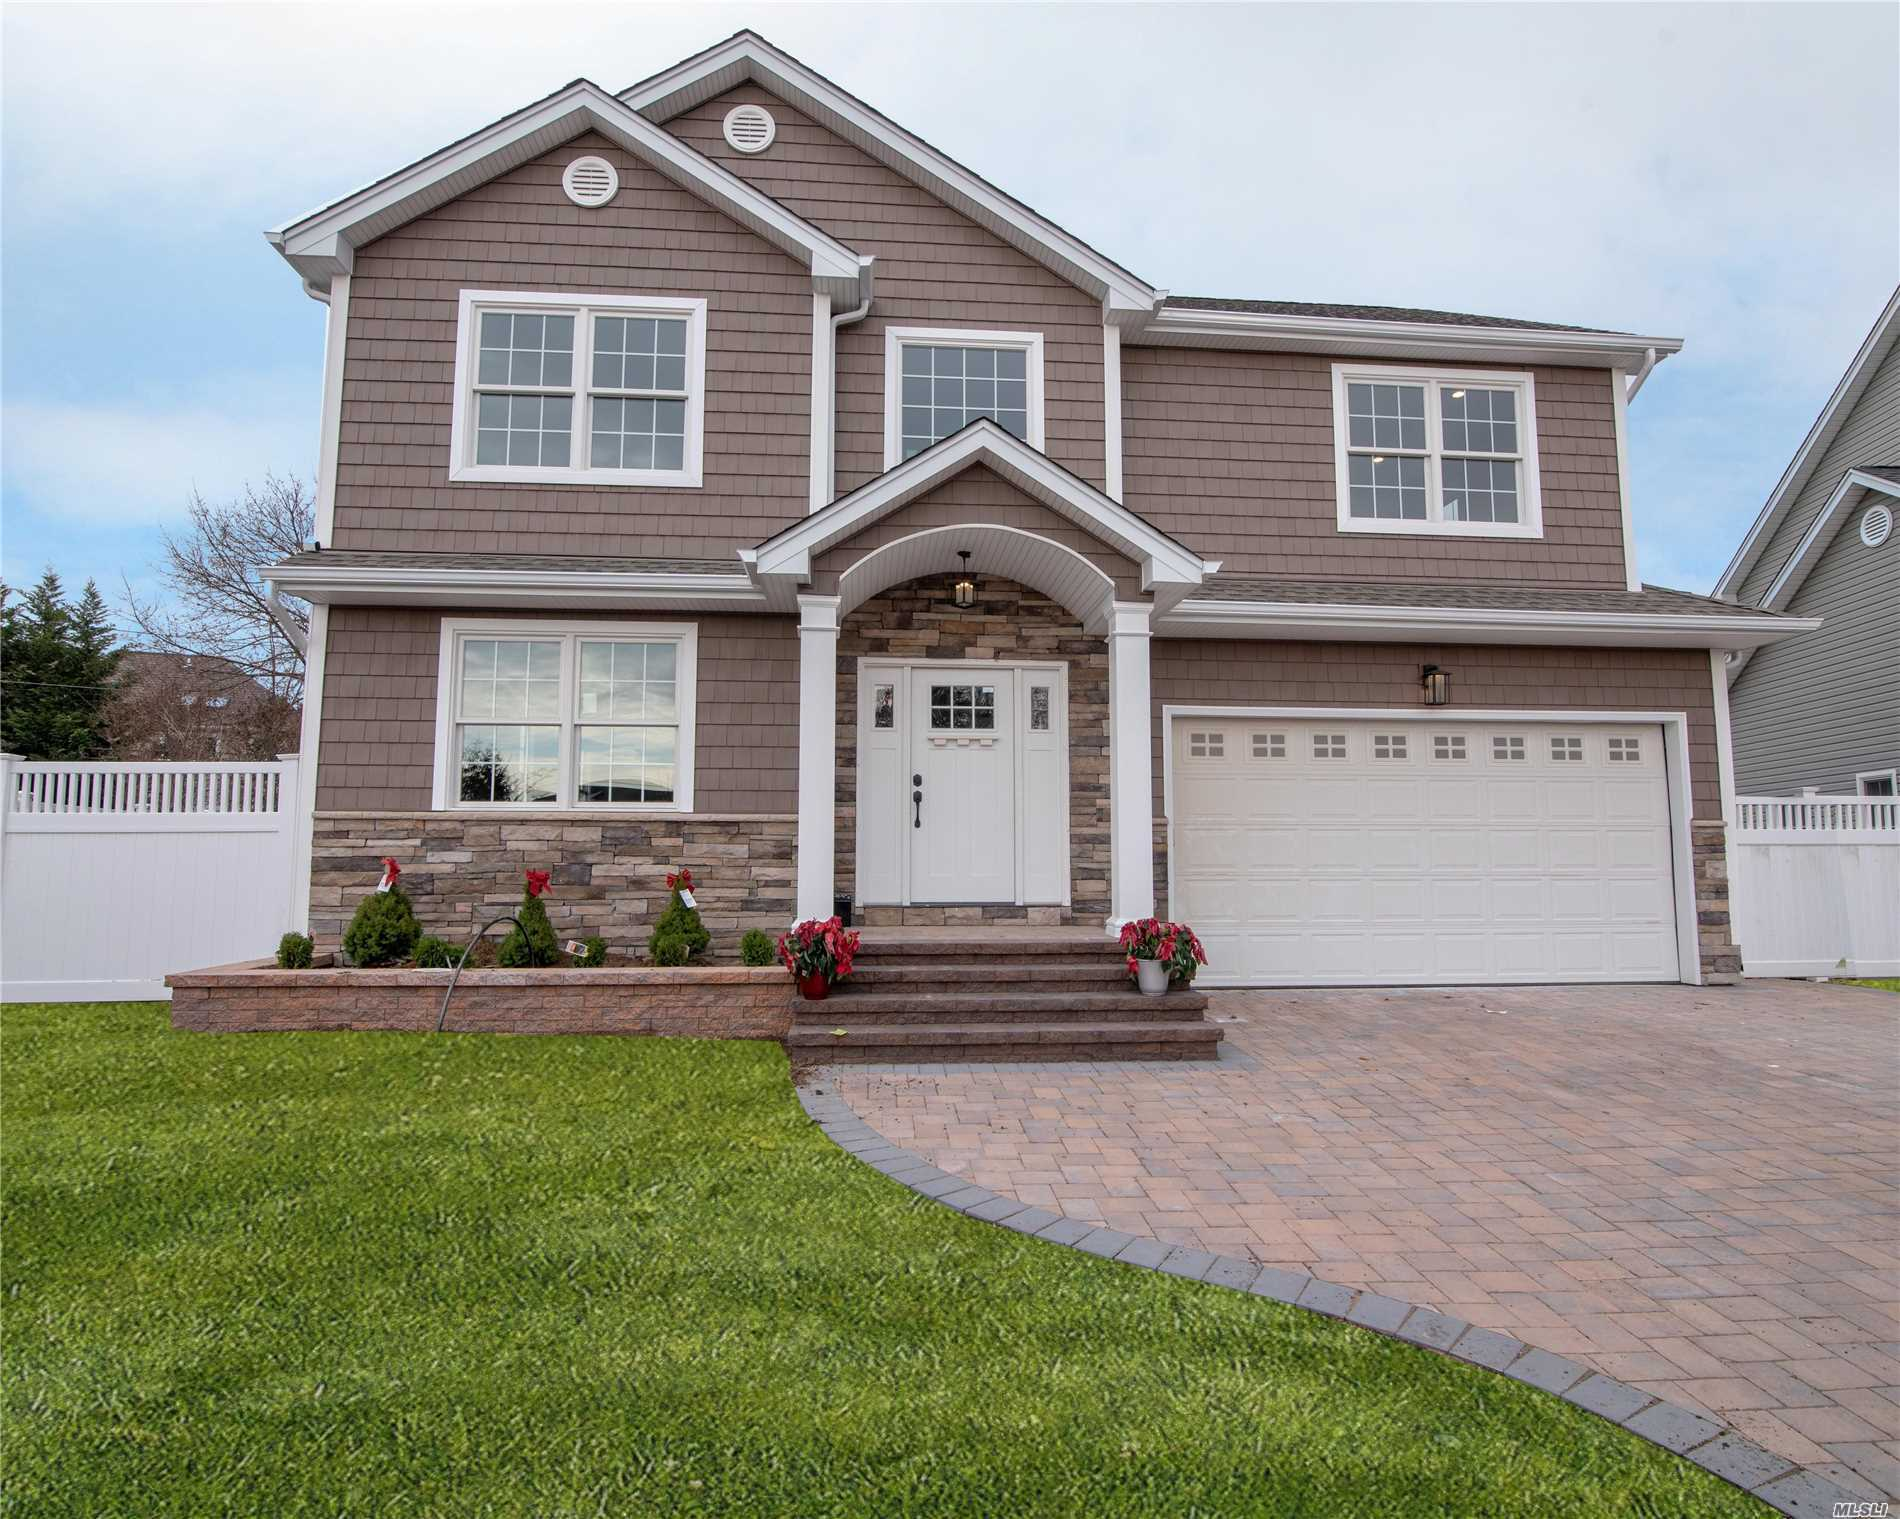 Time To Make Your Move Now!! This Brand New Ch Colonial Features A 2 Story Entry,  Open Flr Plan, Crown Moldings, Lr/Dr, Gourmet Eik With Custom Cabinet, Quartz Center Island, Den W/Fpl, 2 Car-Garage, Full Finished Basement, Outside Entrance, Large Mstr Suite W/Designer Baths And 3 Additional Bed, F/Bth.